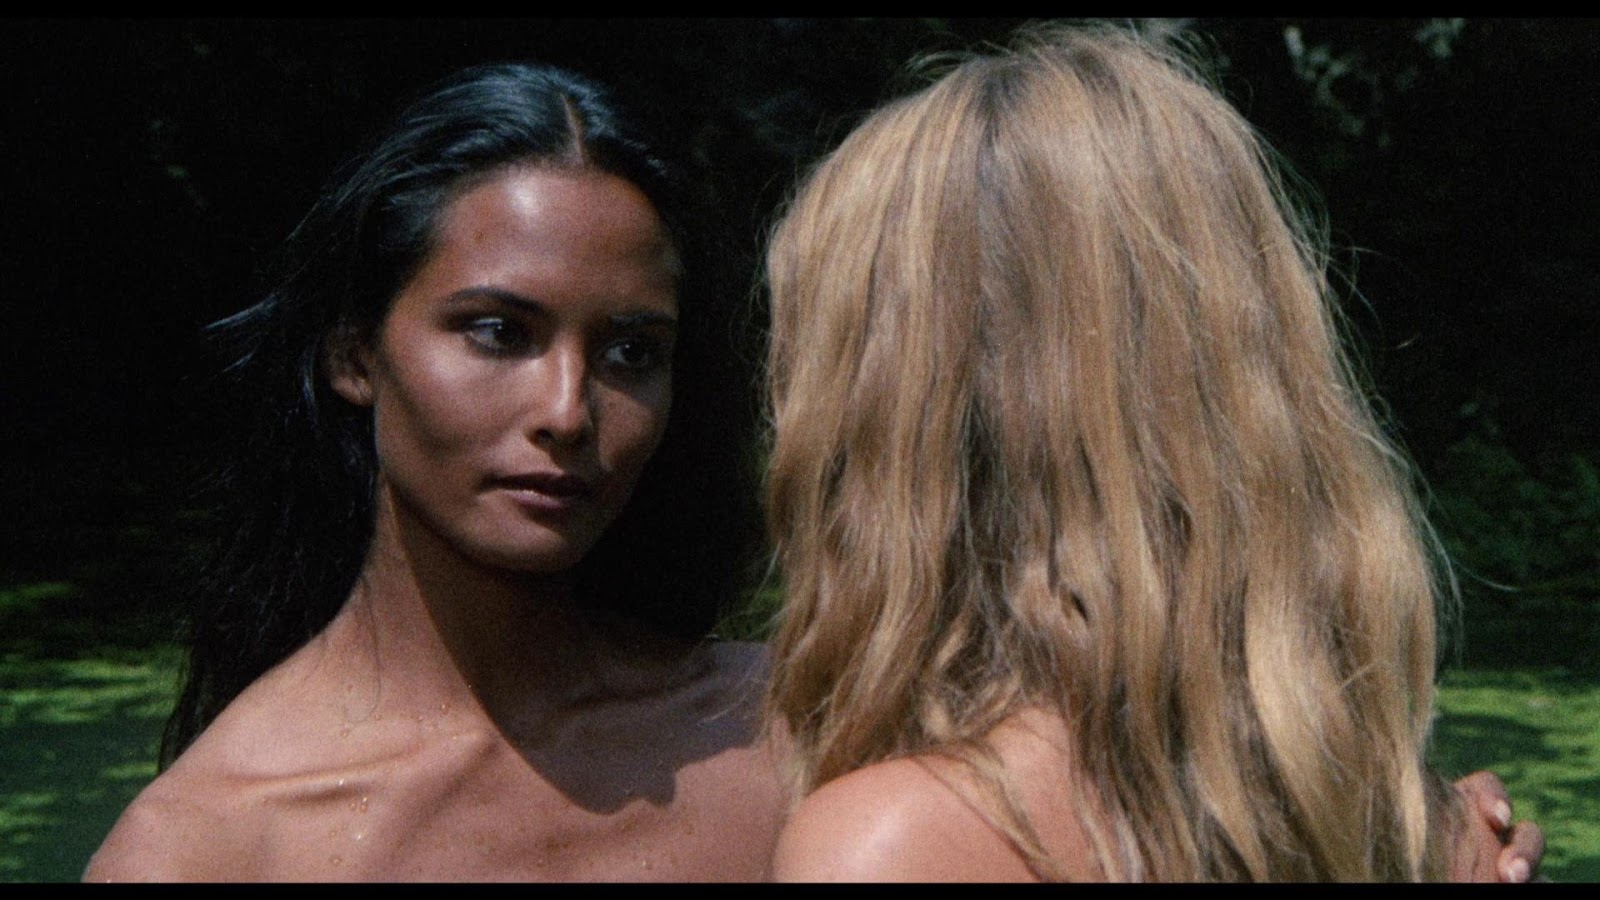 emanuelle feat - EMANUELLE AND THE LAST CANNIBALS Blu-ray Review - Savagery & Sexuality From The Master Of Sleaze